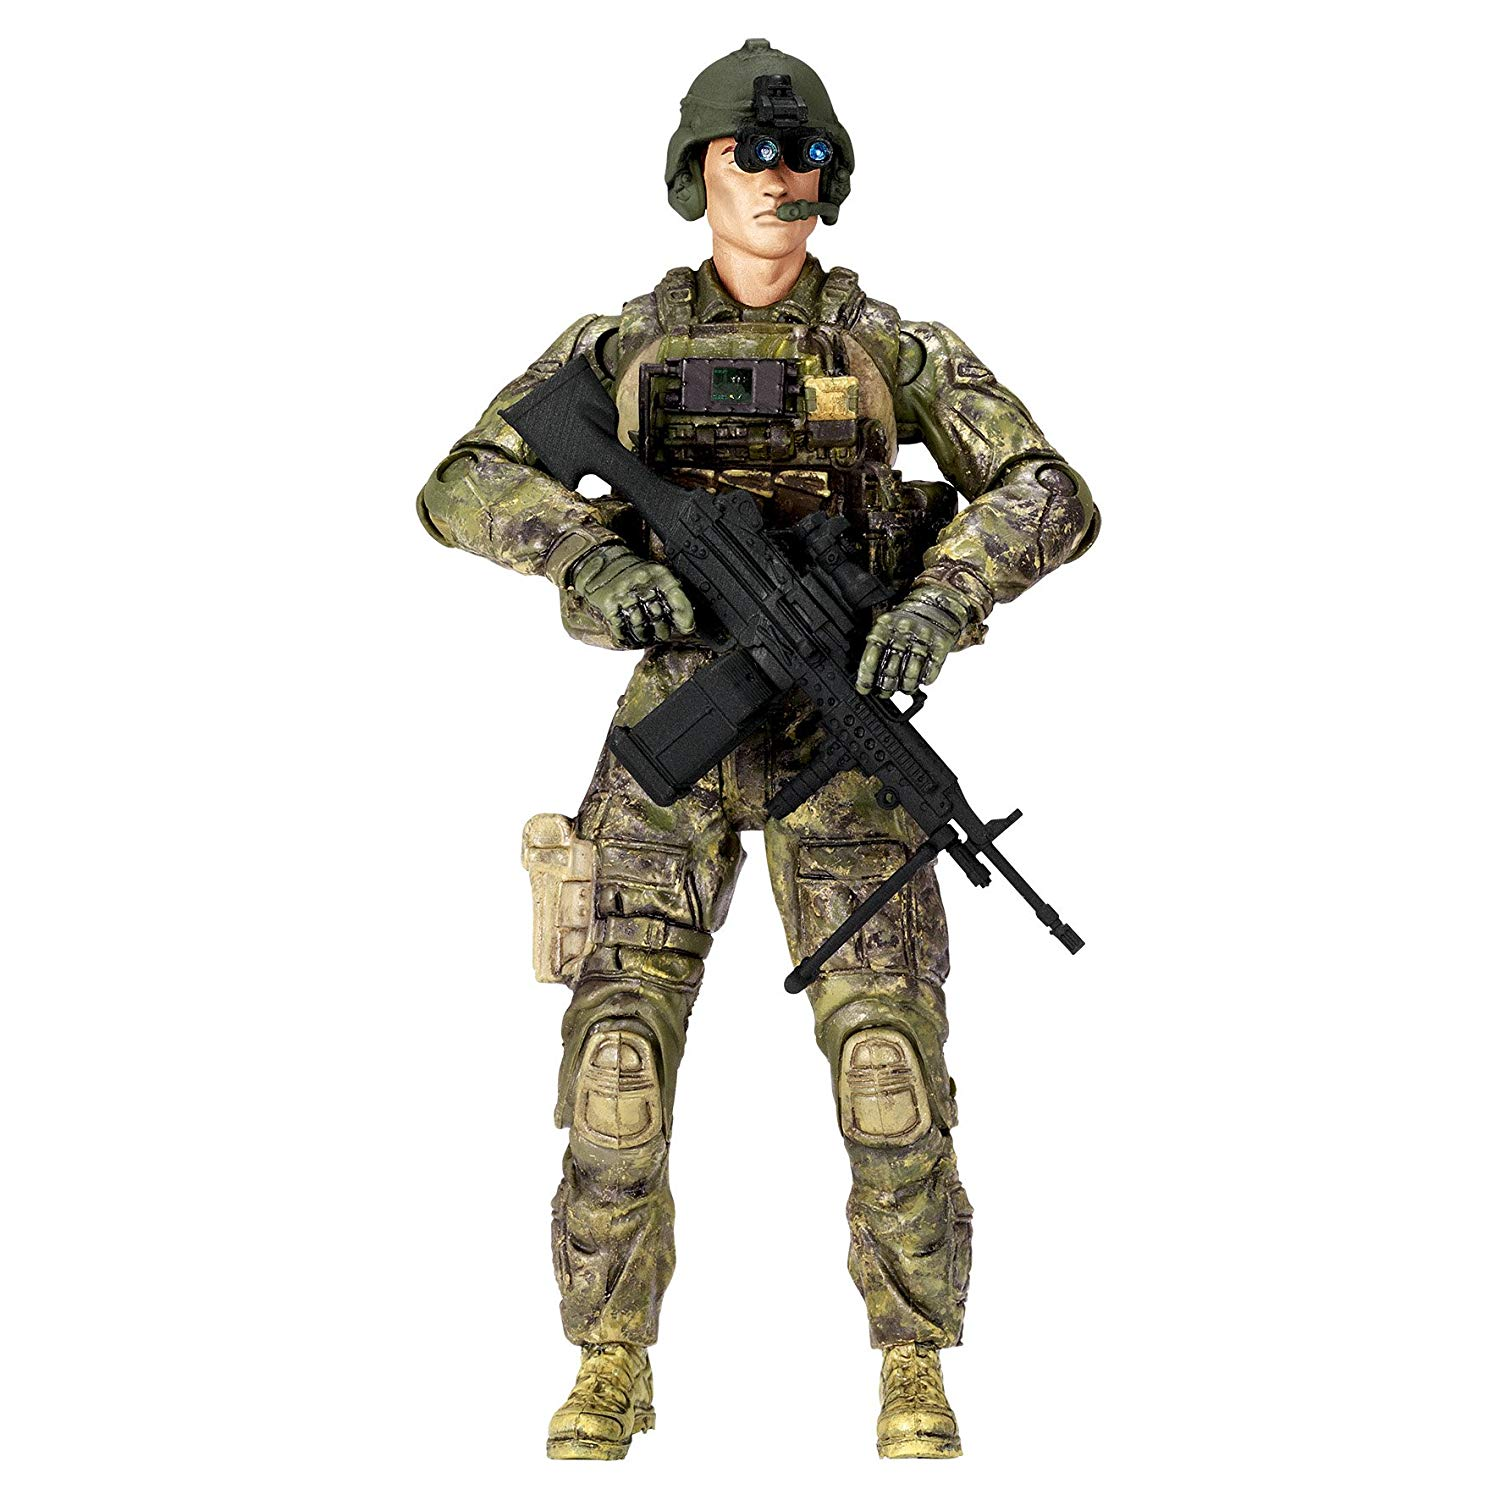 PVC soldier action figure